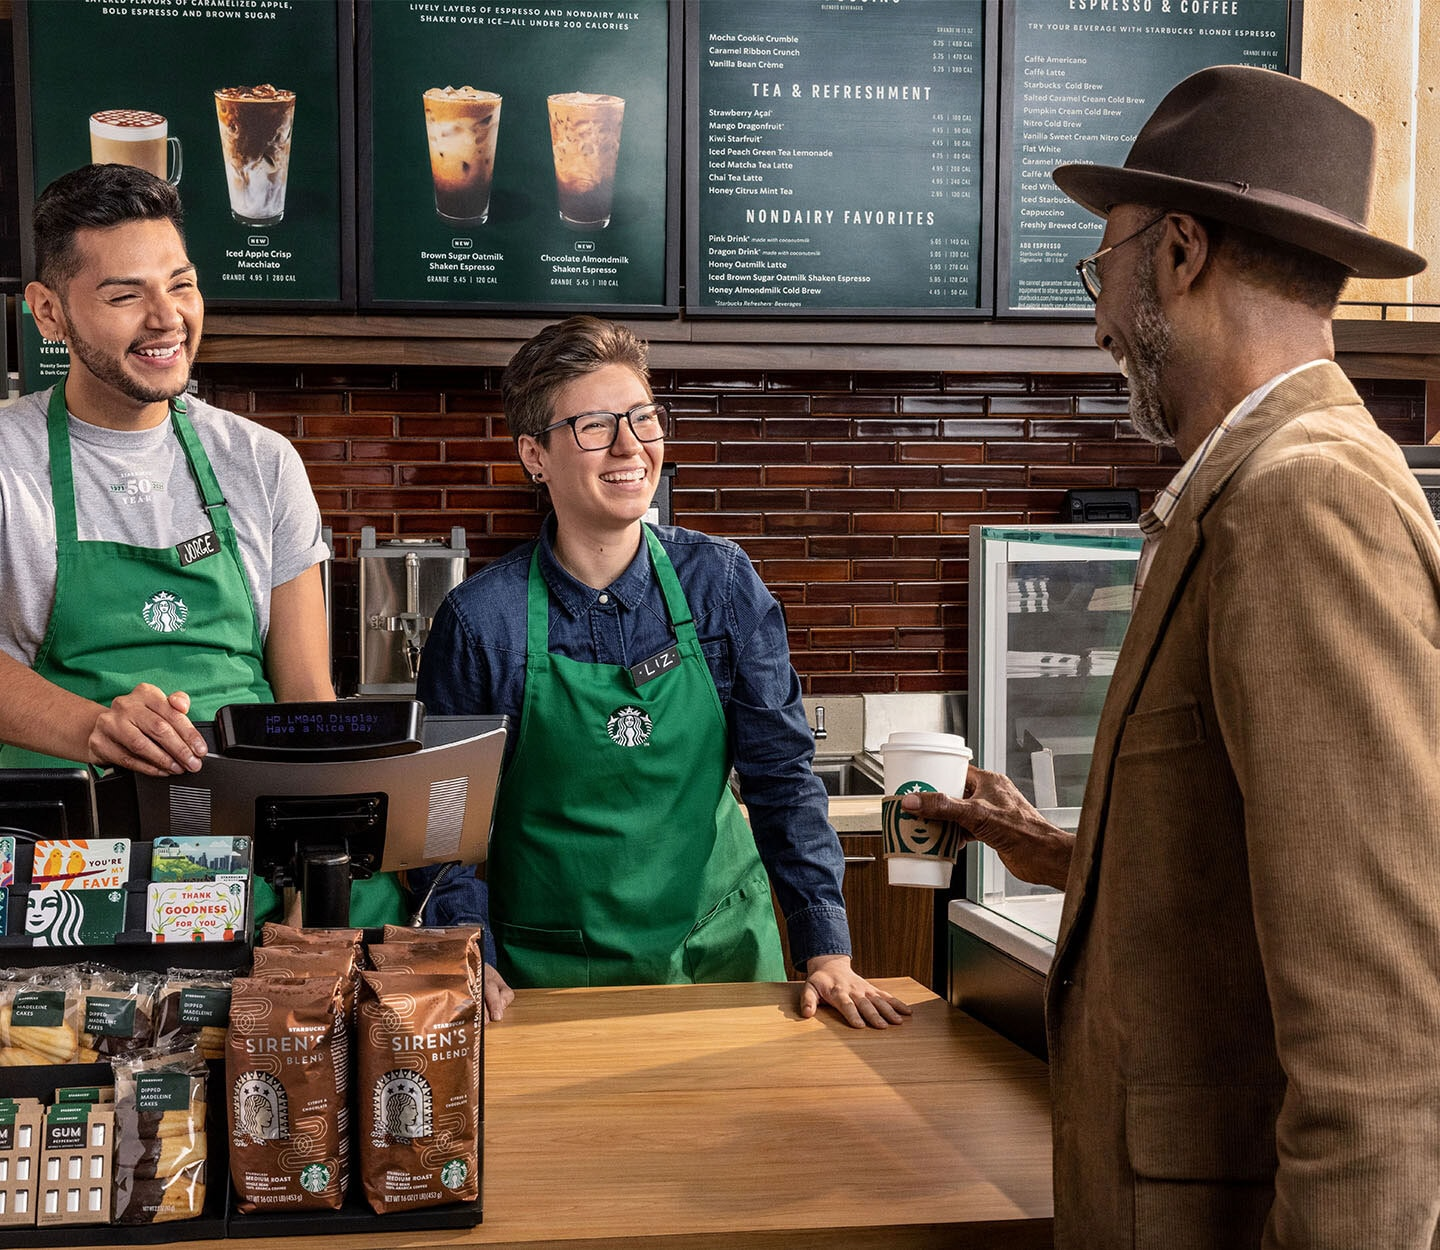 Two smiling baristas serve a Starbucks hot coffee to an older customer.